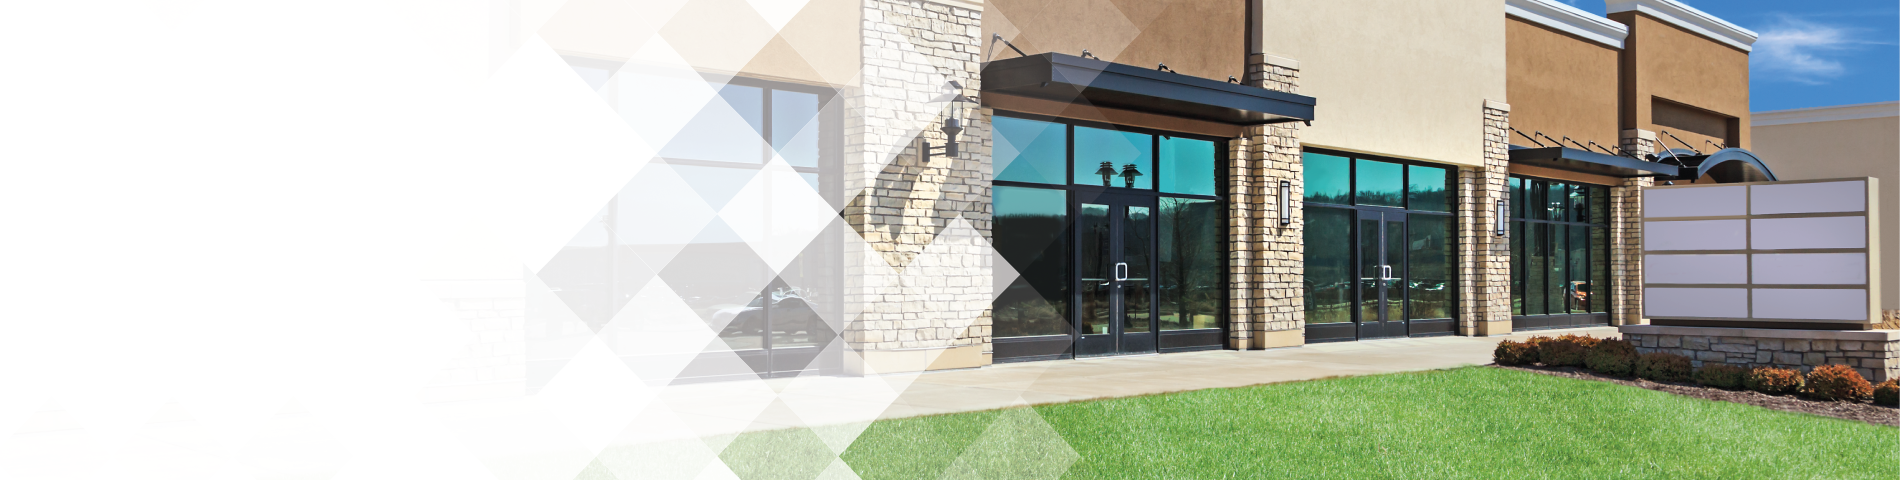 Commercial grounds maintenance and facilities management for commercial properties